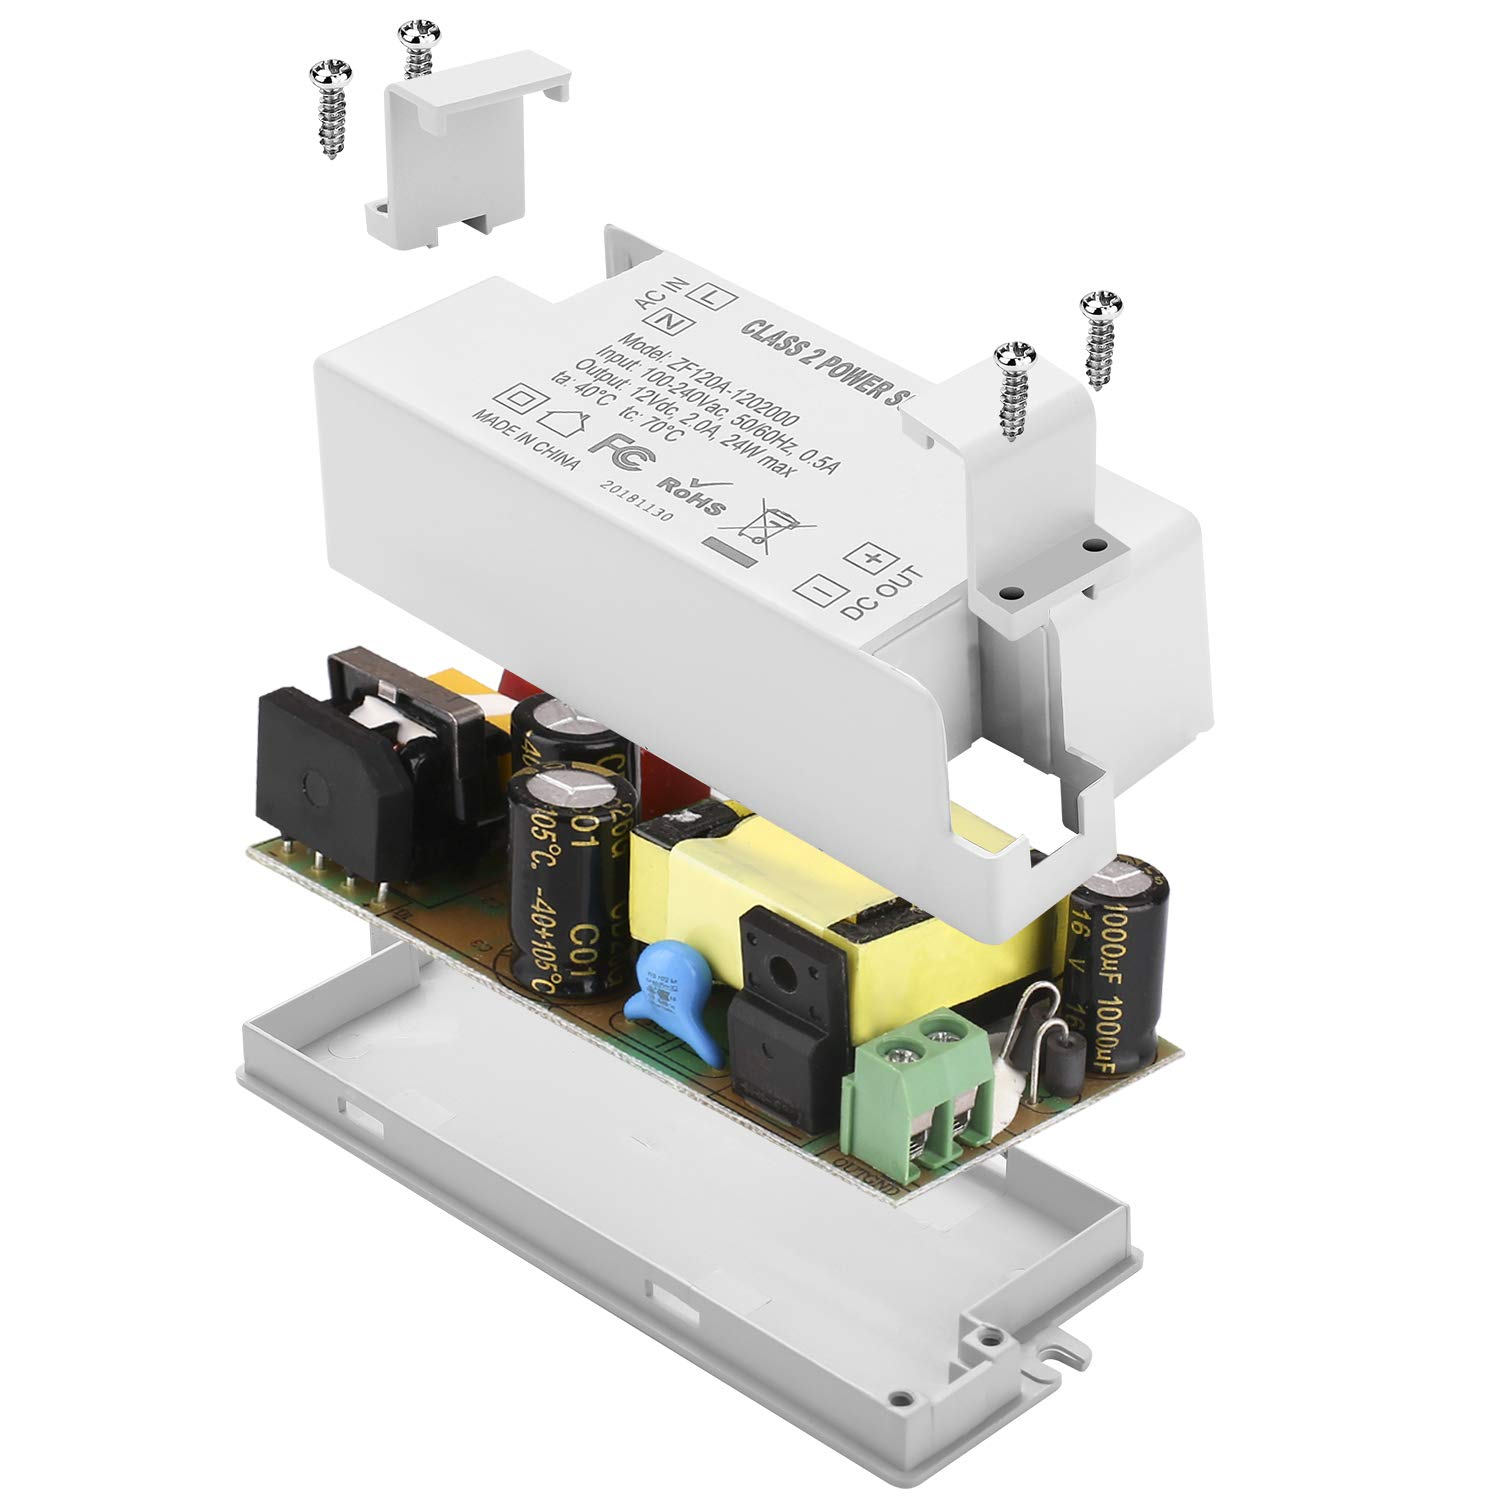 MR11 MR16 Light Bulbs COOLWEST Transformer Driver Power Supply 24W 12V for LED Strip Lights and G4